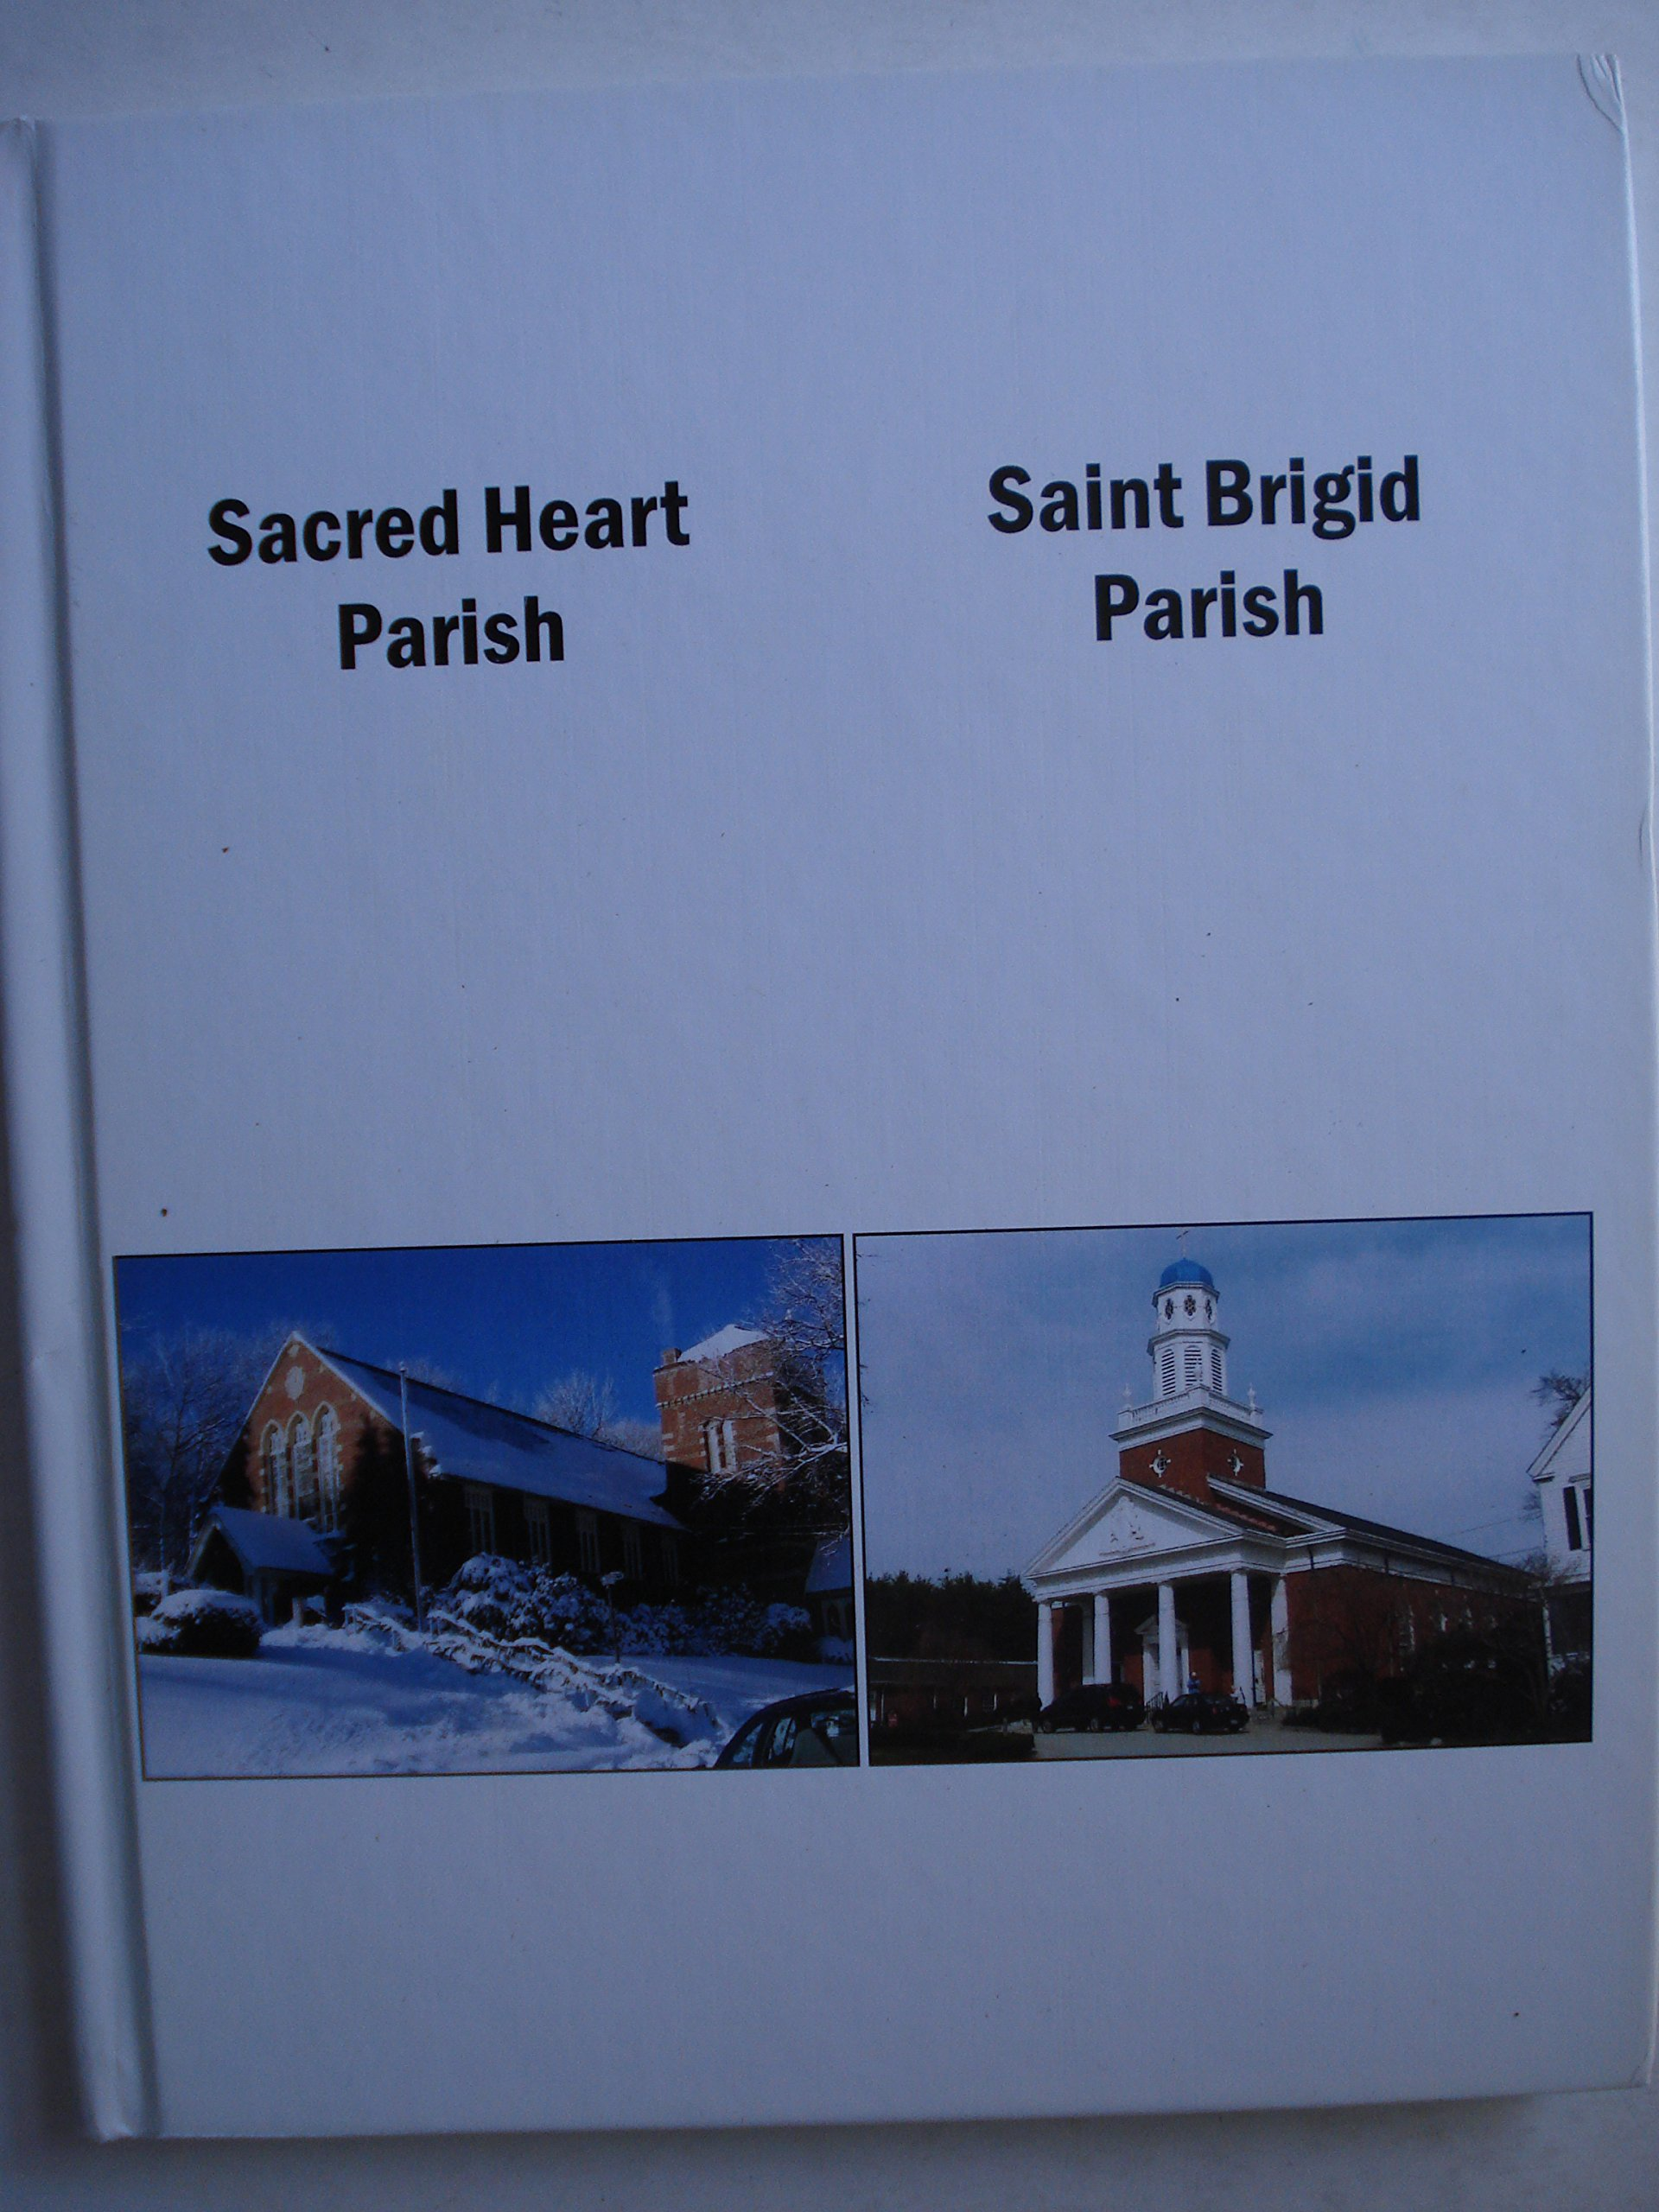 Download Sacred Heart Parish & Saint Brigid Parish Lexington MA Church Directory ebook